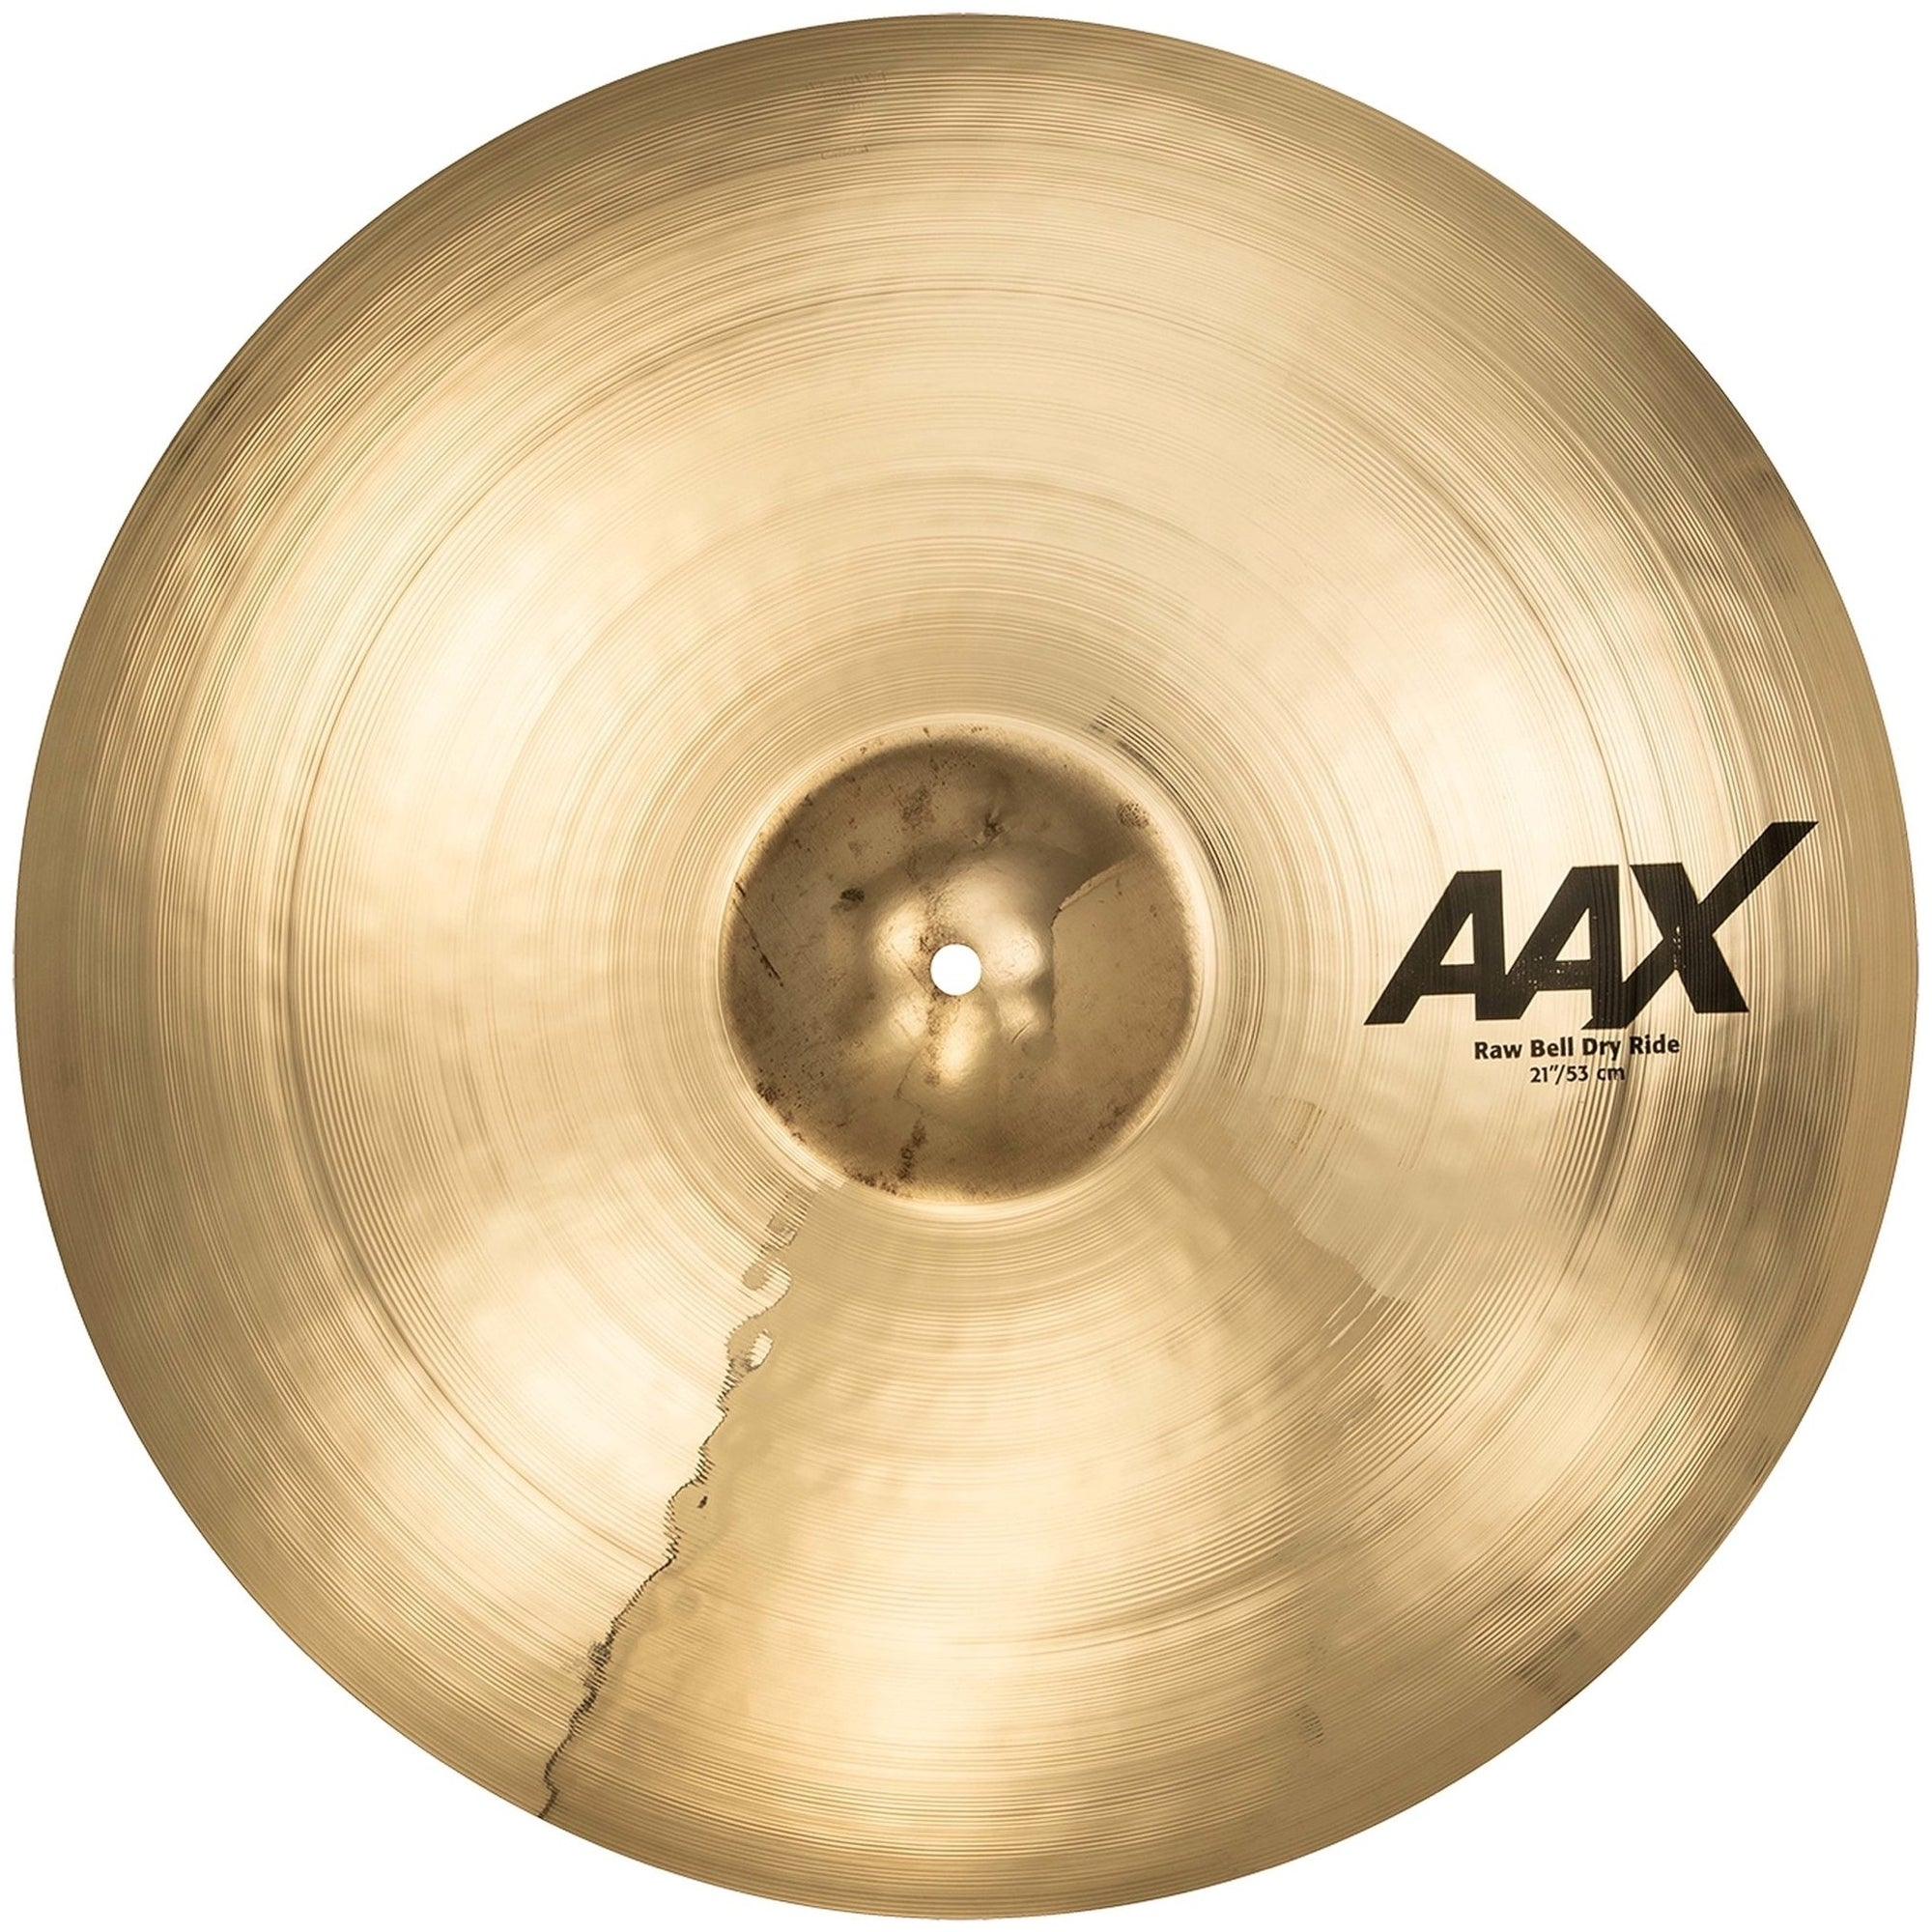 Sabian AAX Raw Bell Dry Ride Cymbal, Brilliant Finish, 21 Inch